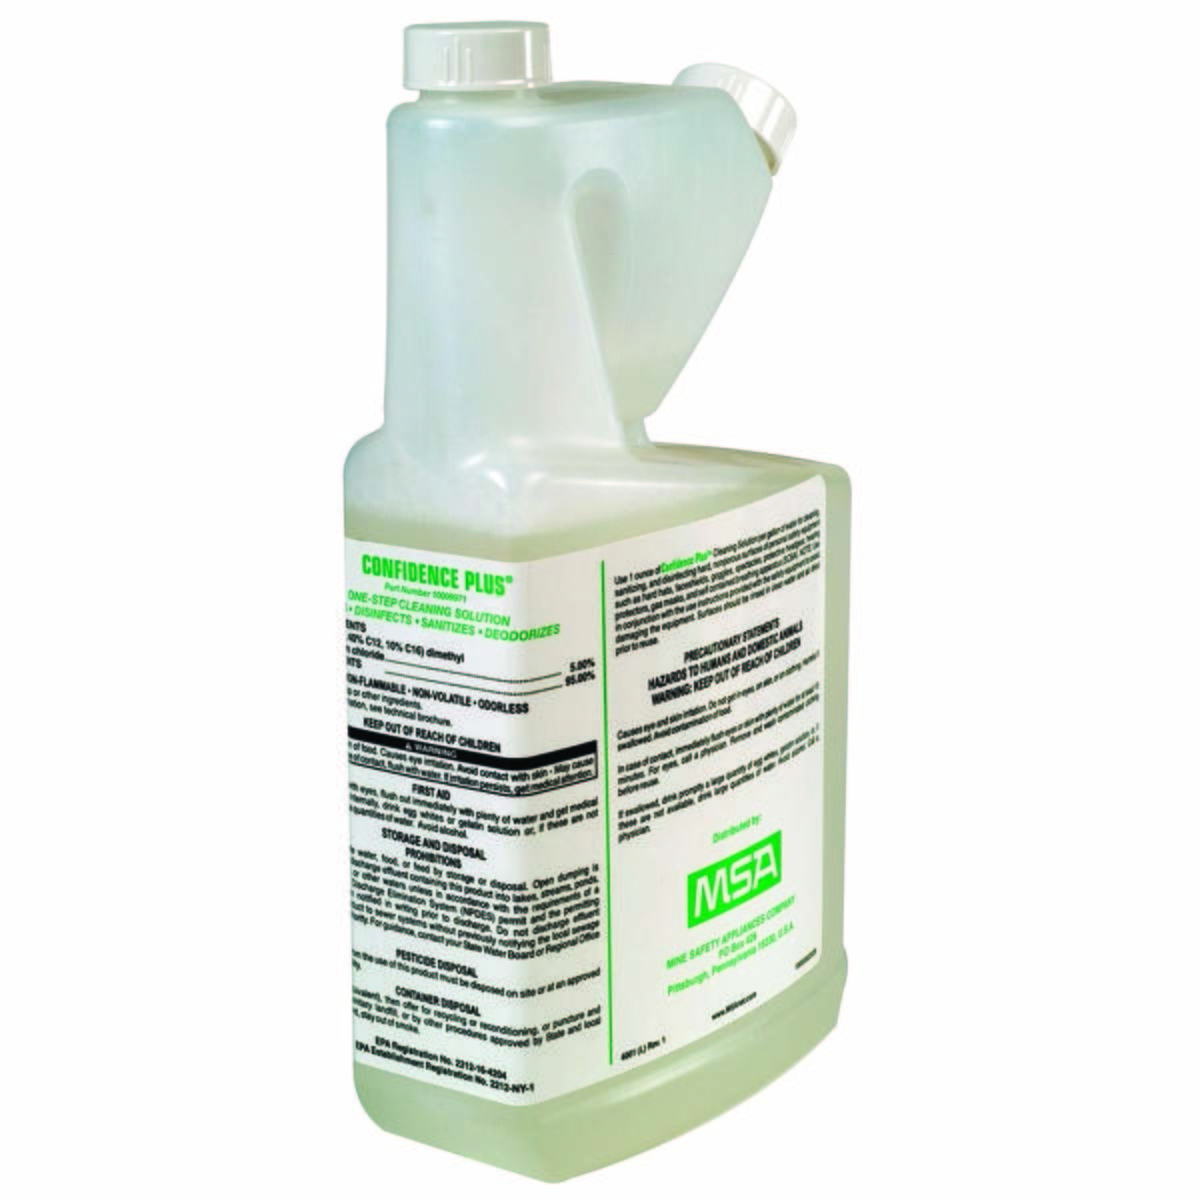 SOLUTION,CONFIDENCE PLUS,CLEANING,32 OZ